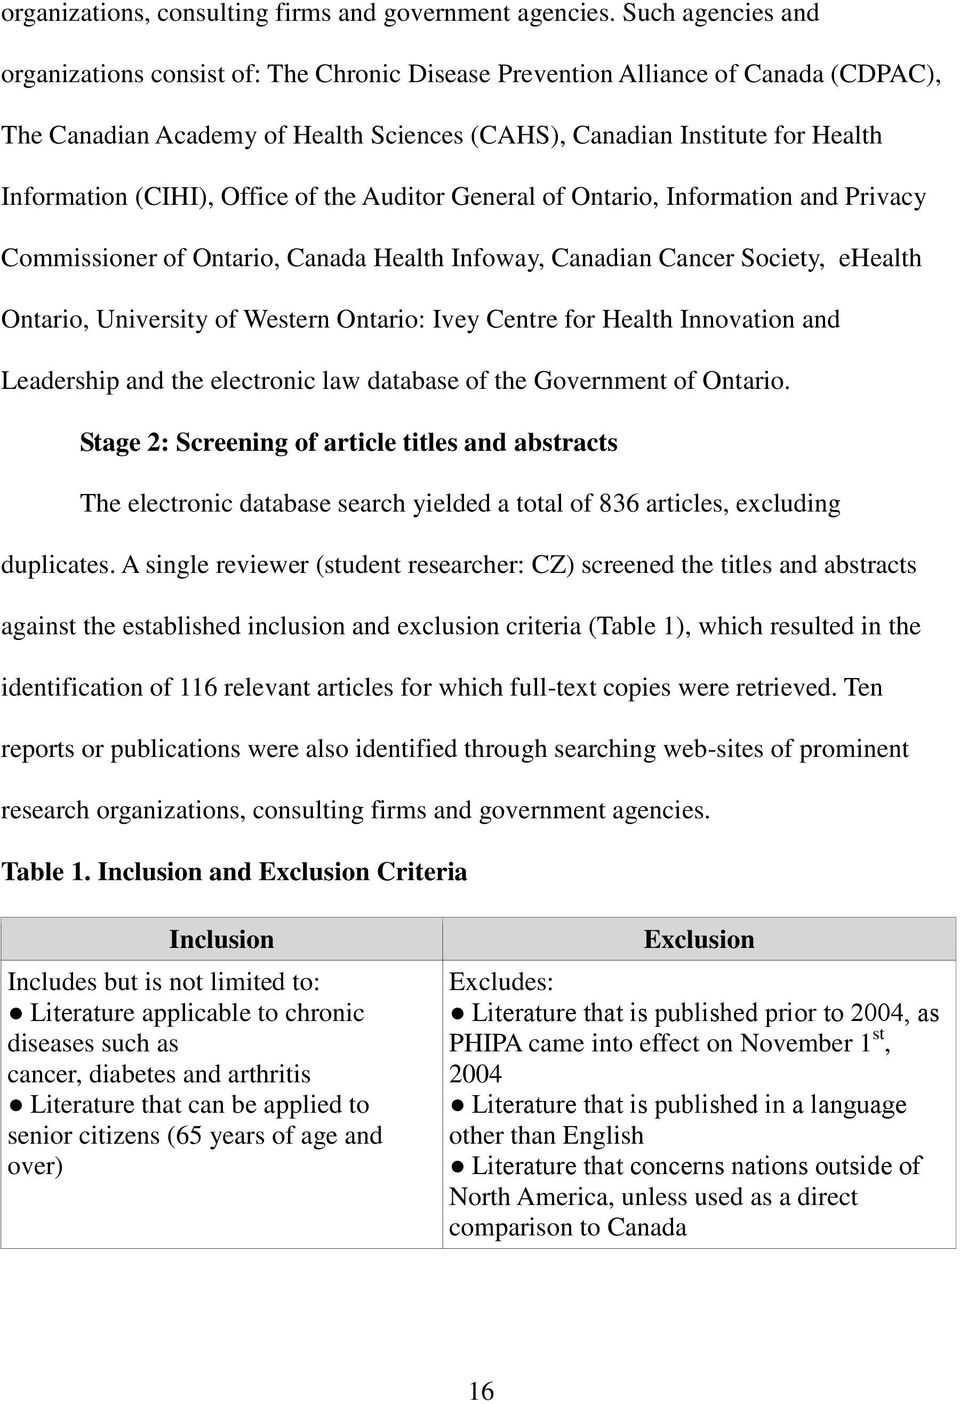 (CIHI), Office of the Auditor General of Ontario, Information and Privacy Commissioner of Ontario, Canada Health Infoway, Canadian Cancer Society, ehealth Ontario, University of Western Ontario: Ivey